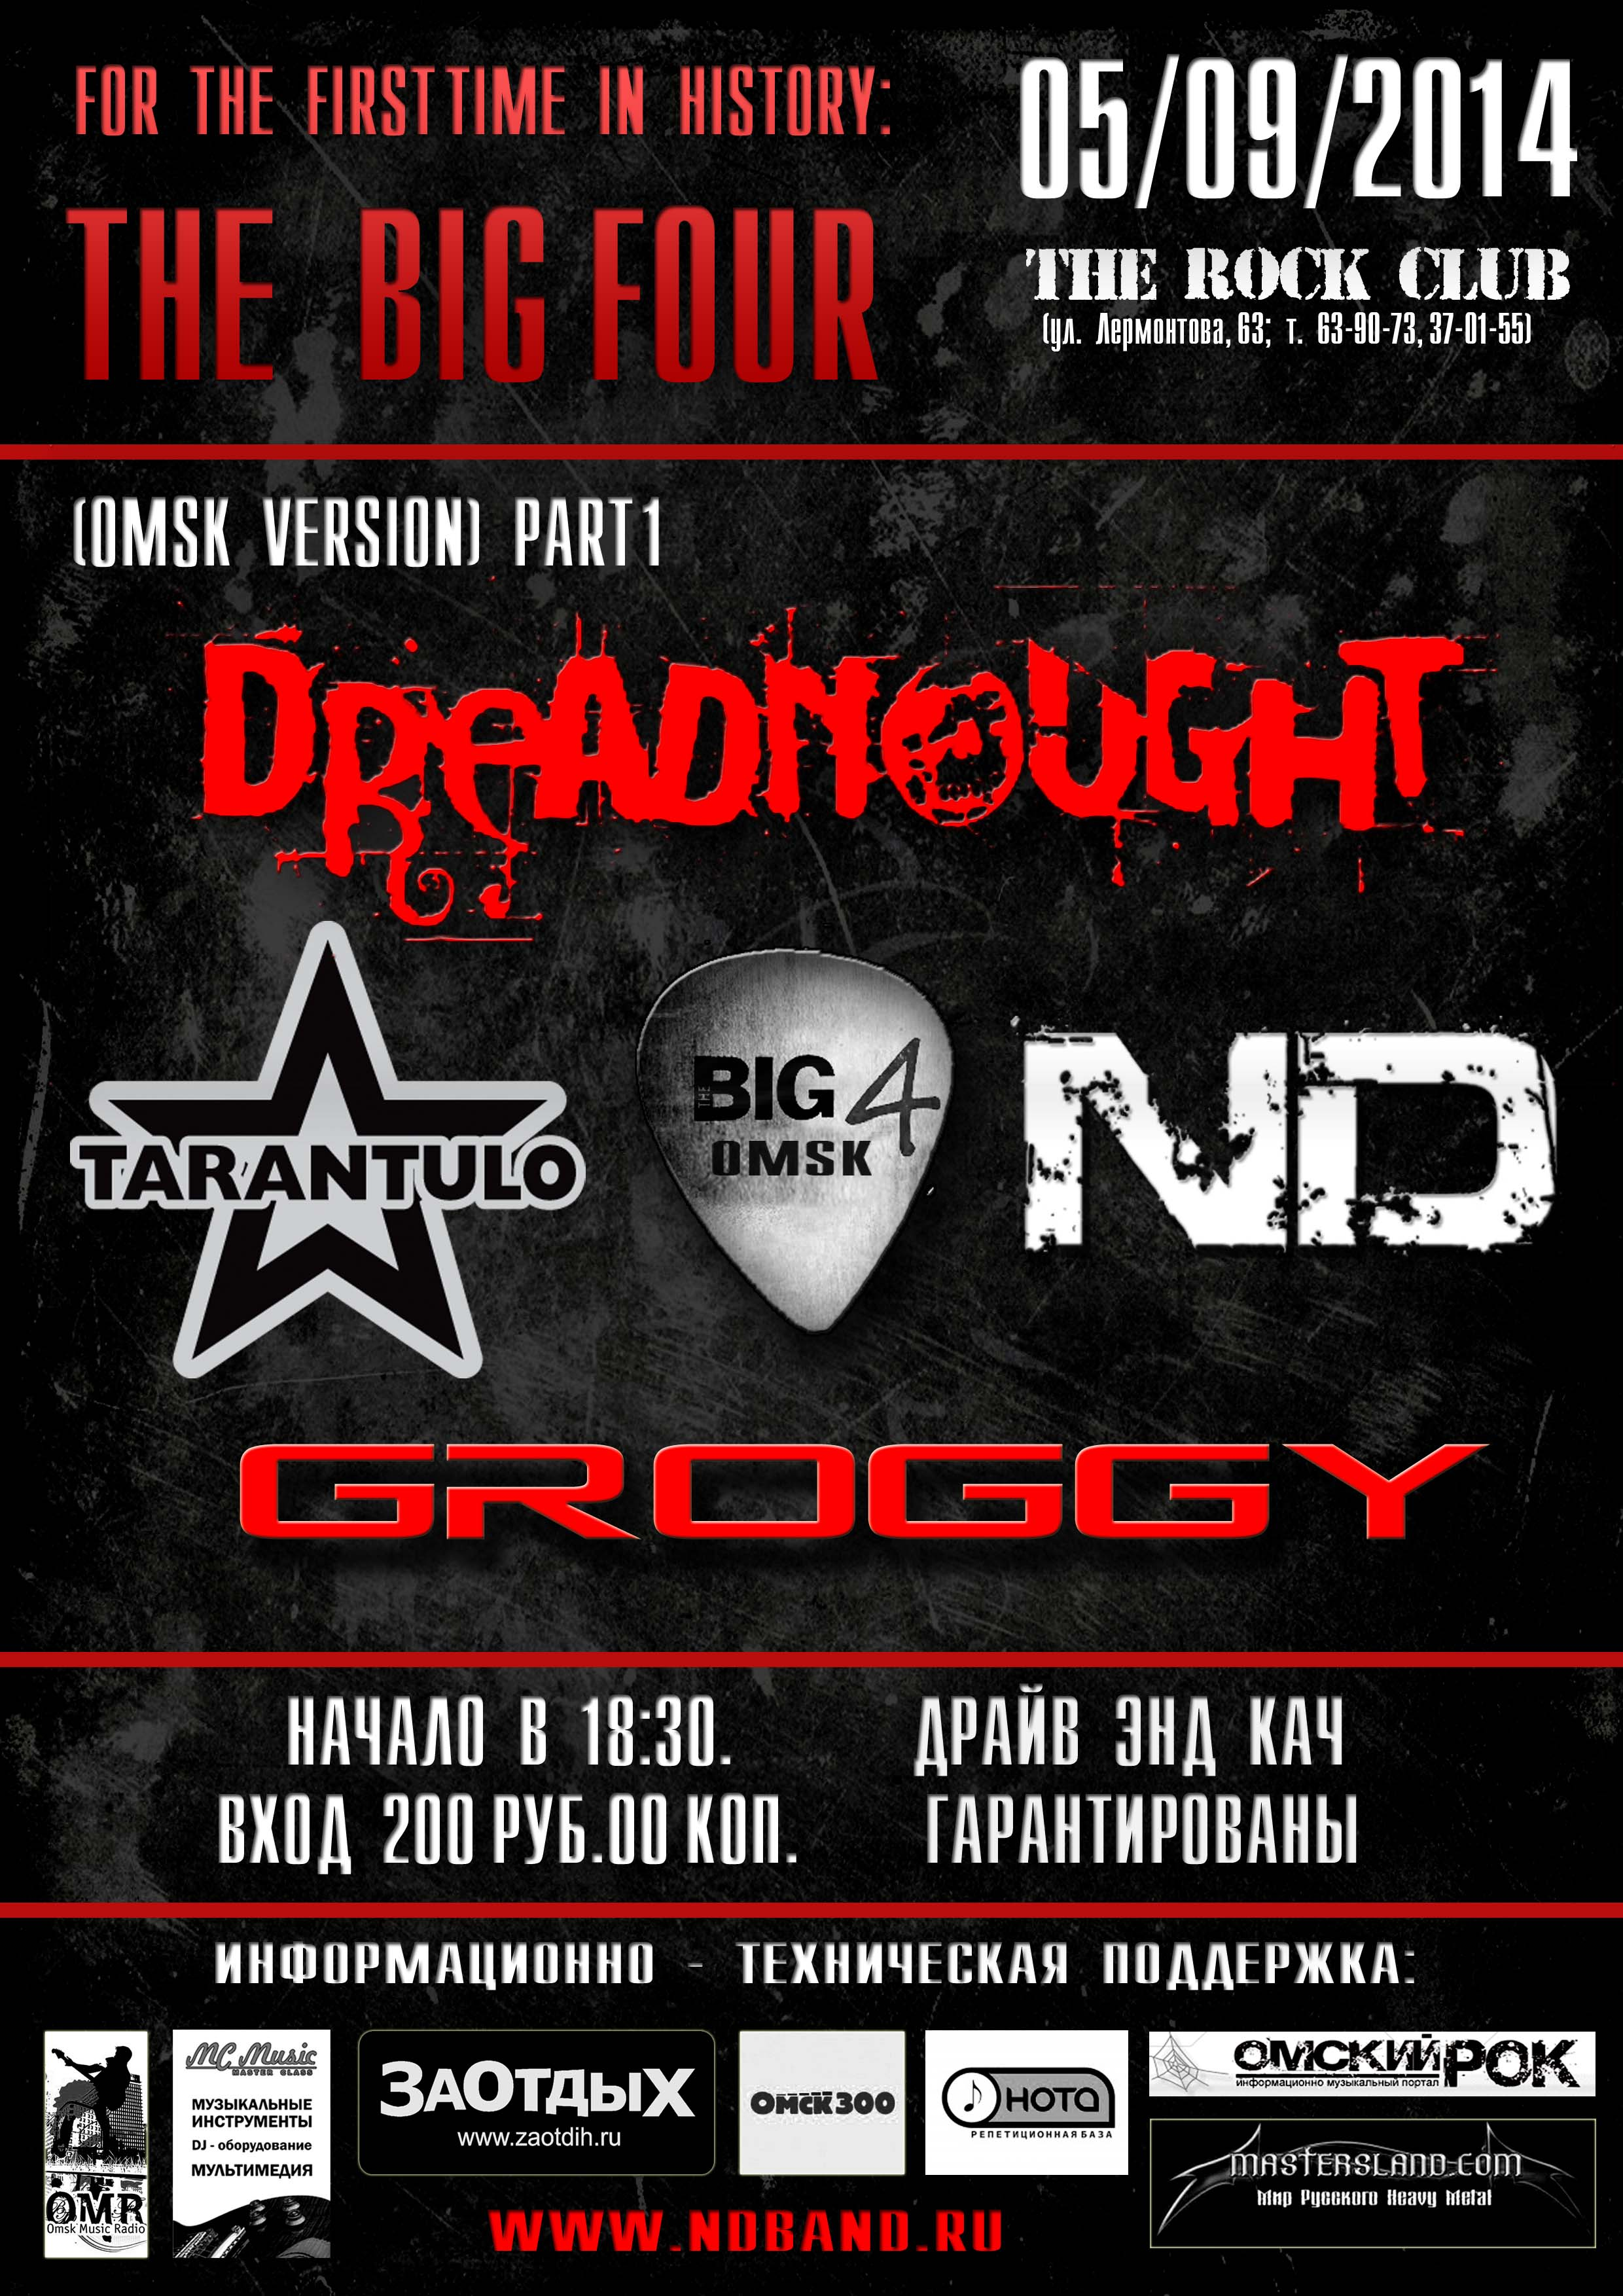 The Big 4 (Omsk Version) 05.09.14 Rock Club